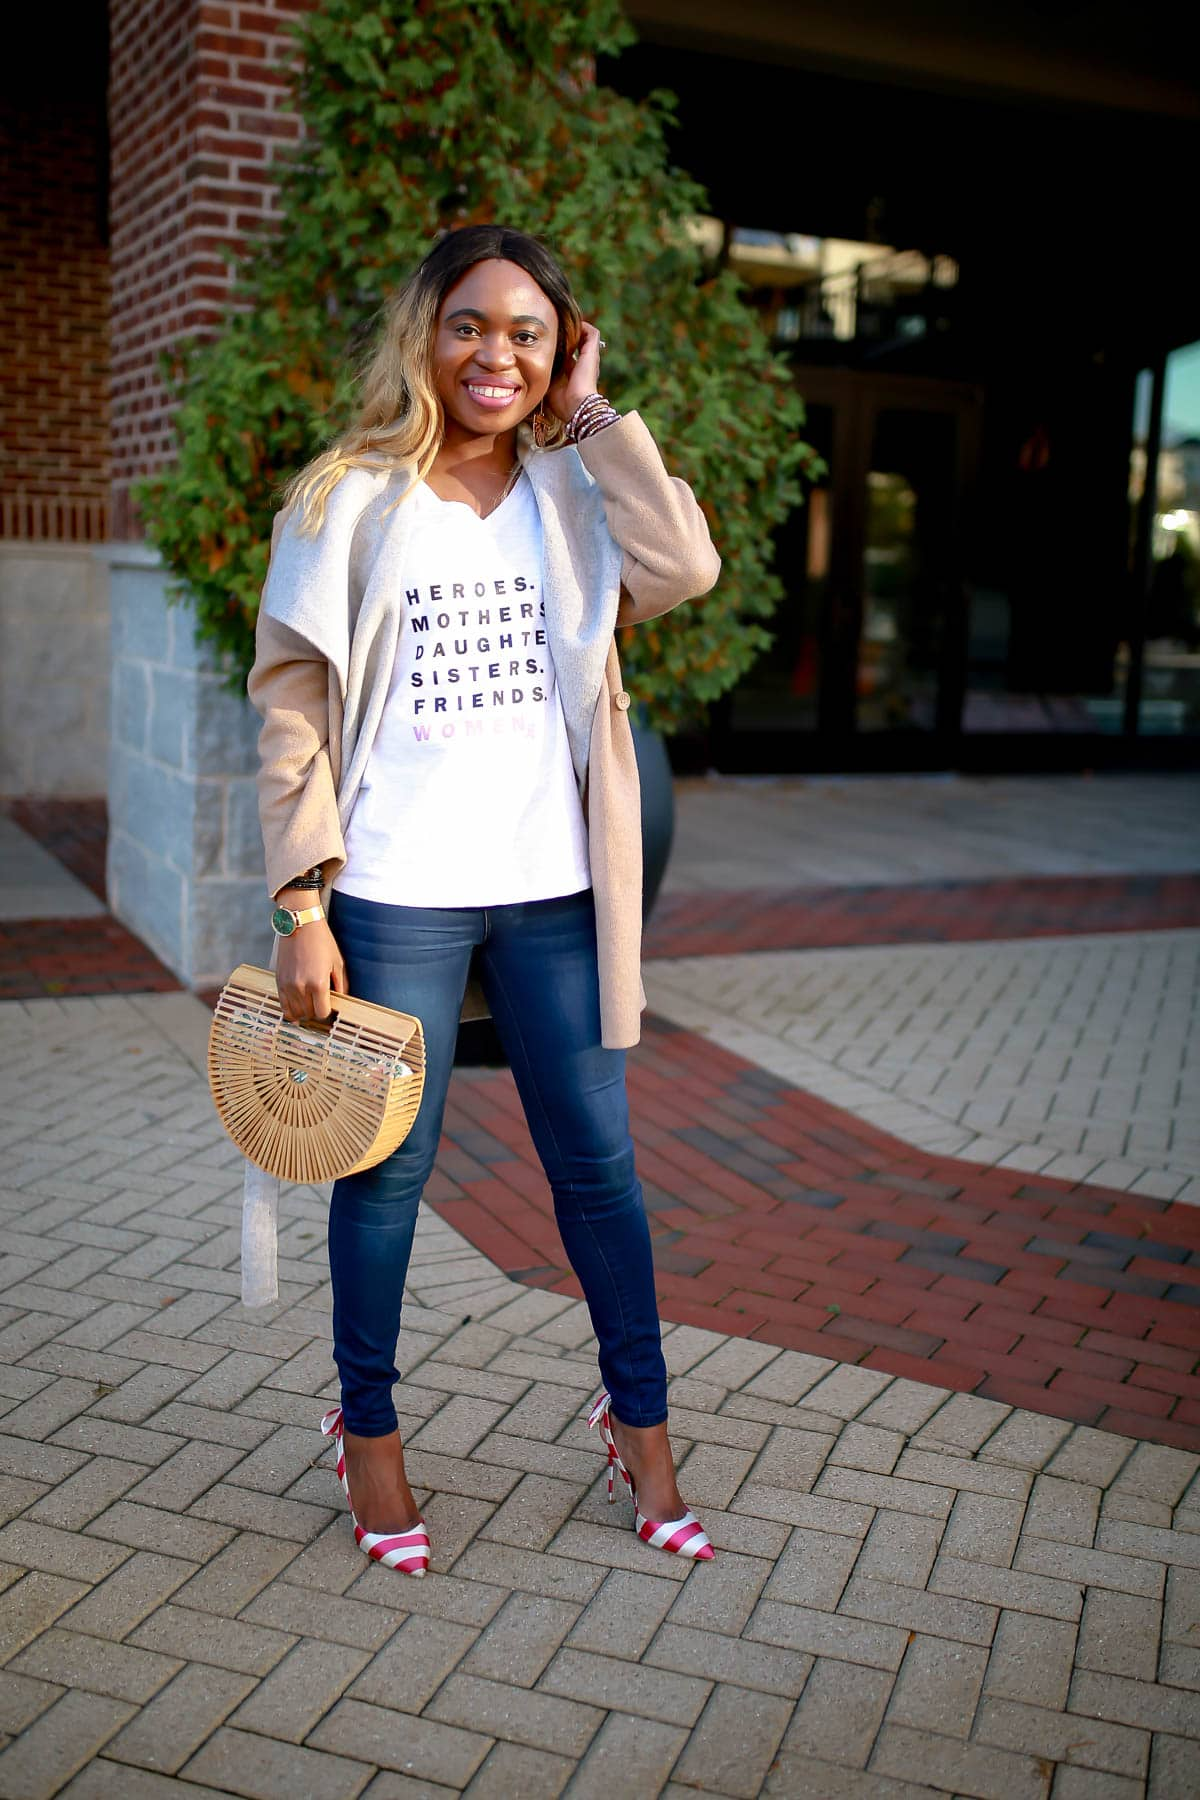 The easiest way to dress up your t-shirt and jeans outfit is to pair with a fitted tee, skinny jeans without excess embellishments, and a pair of ballet flats or slides. Throw on a clean black or denim blazer and be ready to conquer the world.